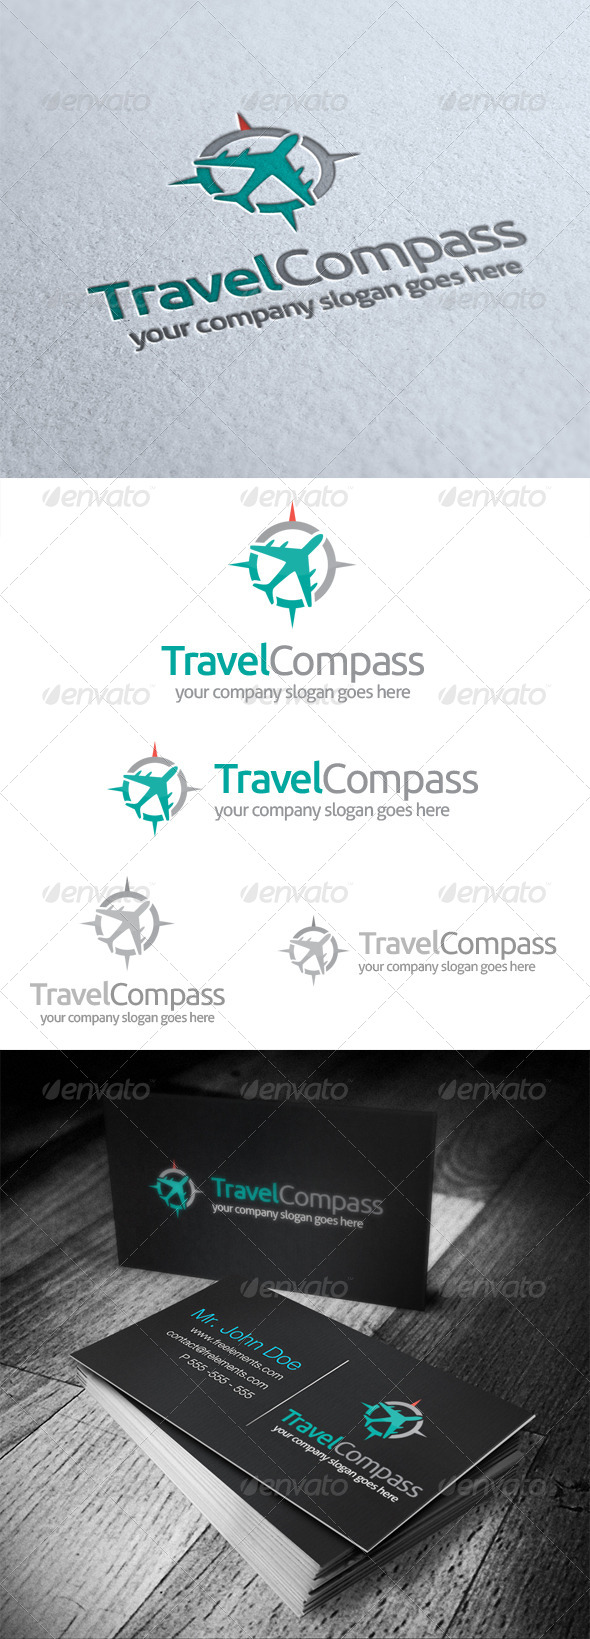 Travel Compass Logo - Objects Logo Templates